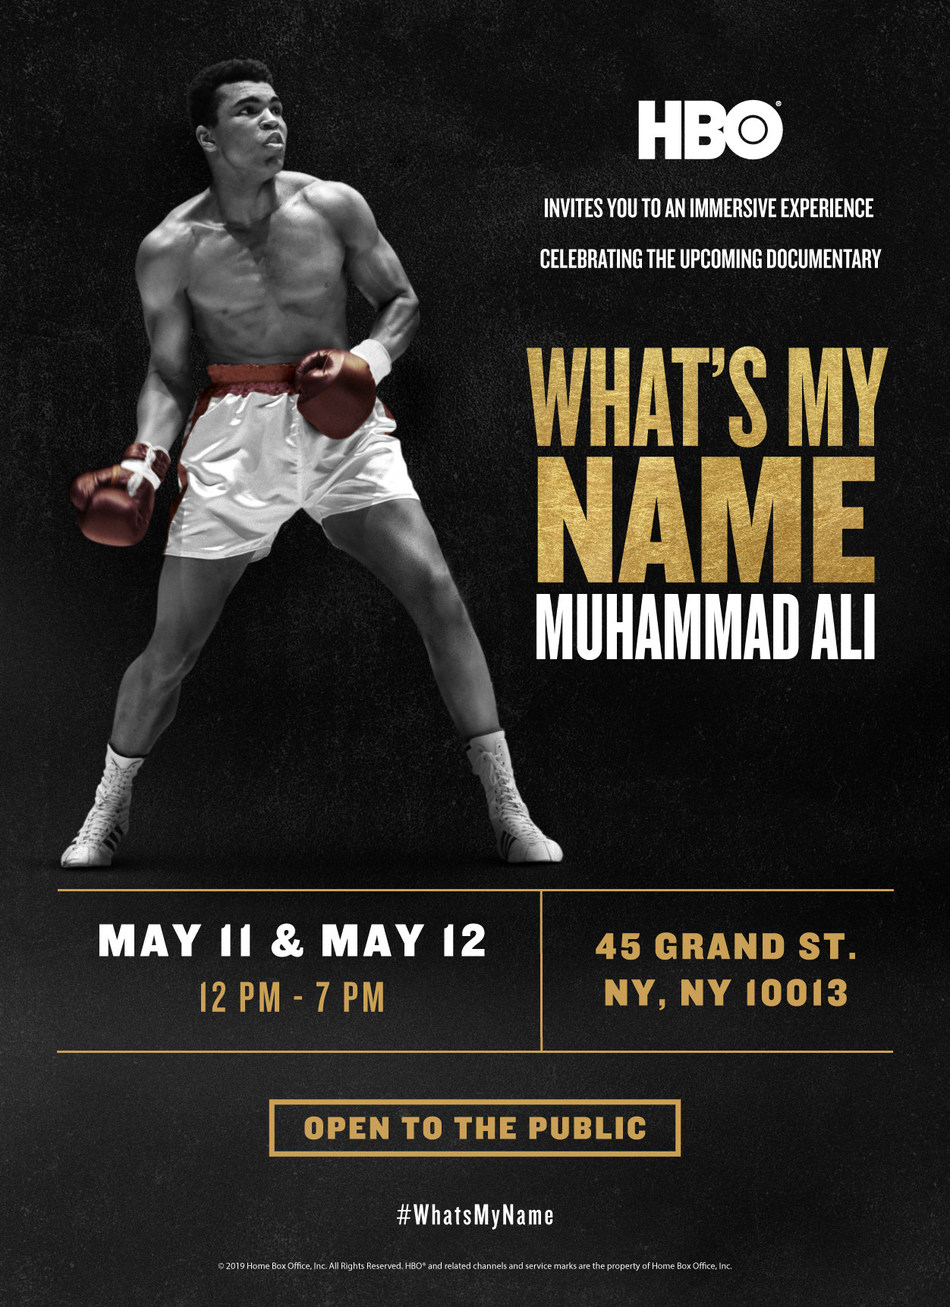 دانلود فیلم Whats My Name Muhammad Ali 2019